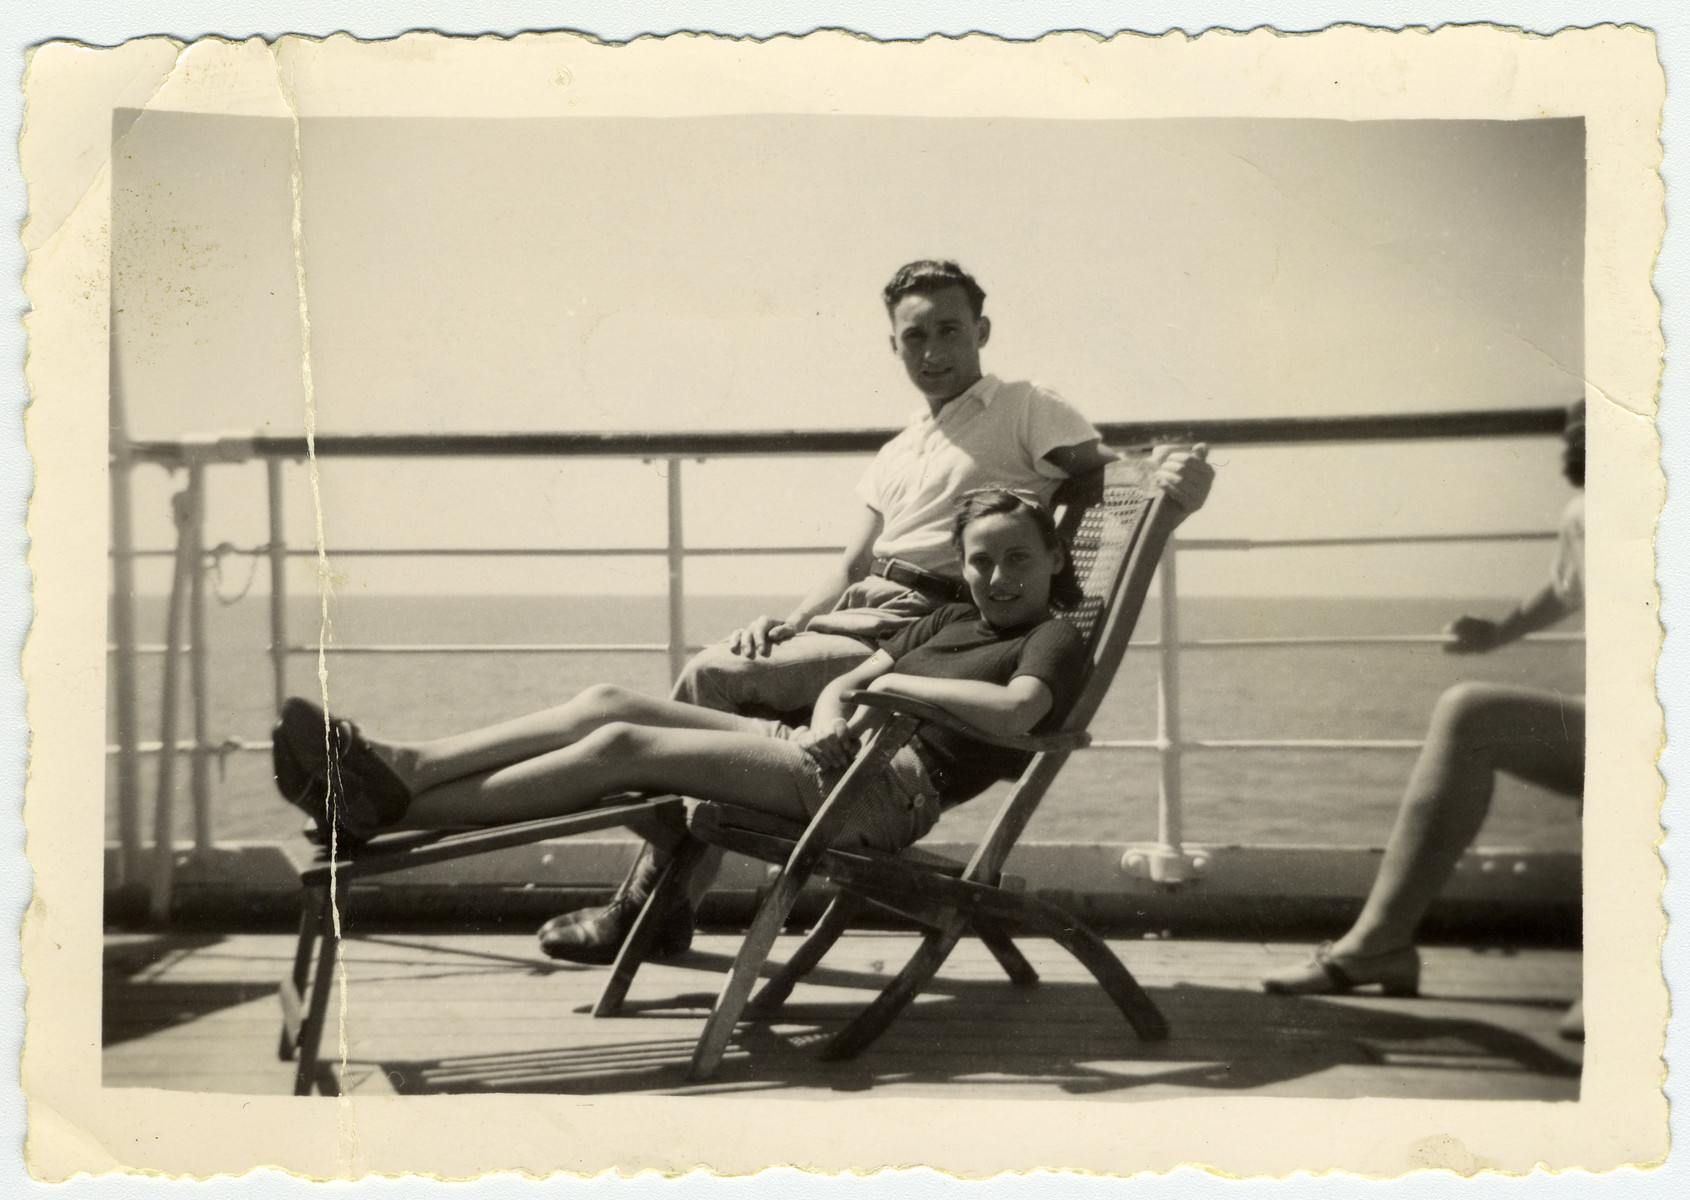 A young couple relaxes on a deck chair during their voyage to Africa where they are being deported as enemy aliens.